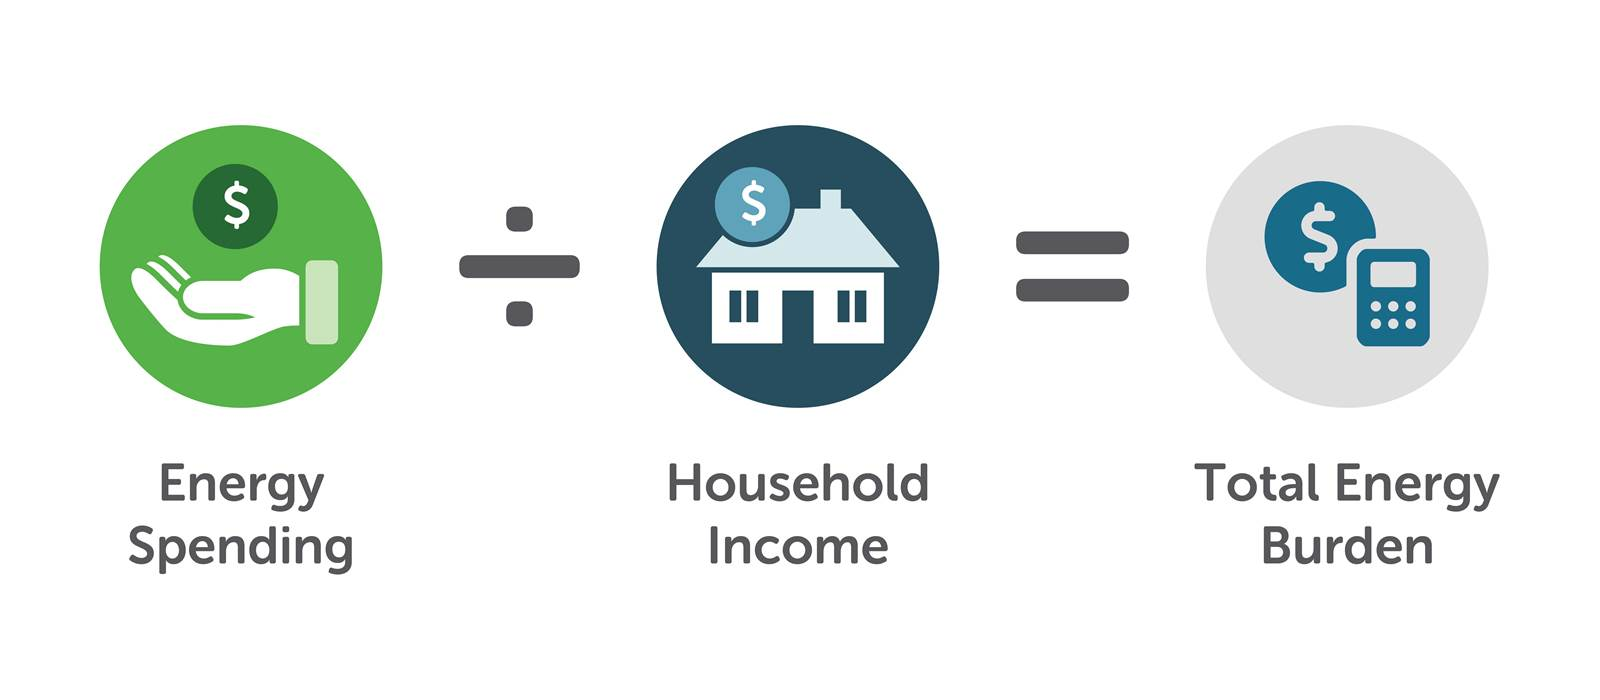 Graphic depicting energy spending divided by household income equals total energy burden